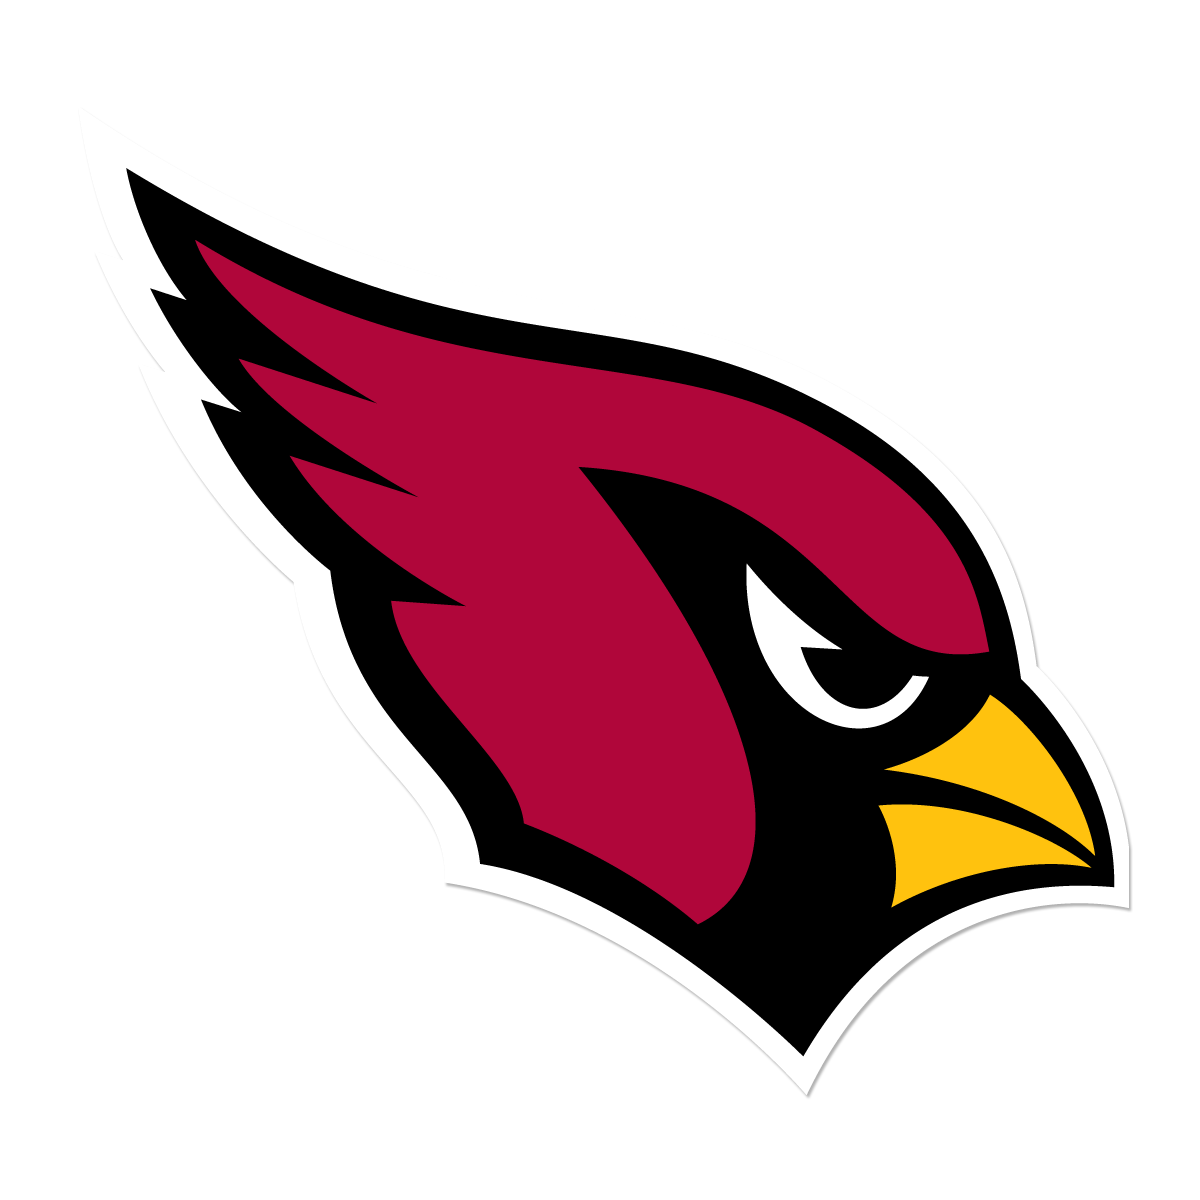 1200x1200 American Football Team Png Images Transparent Free Download